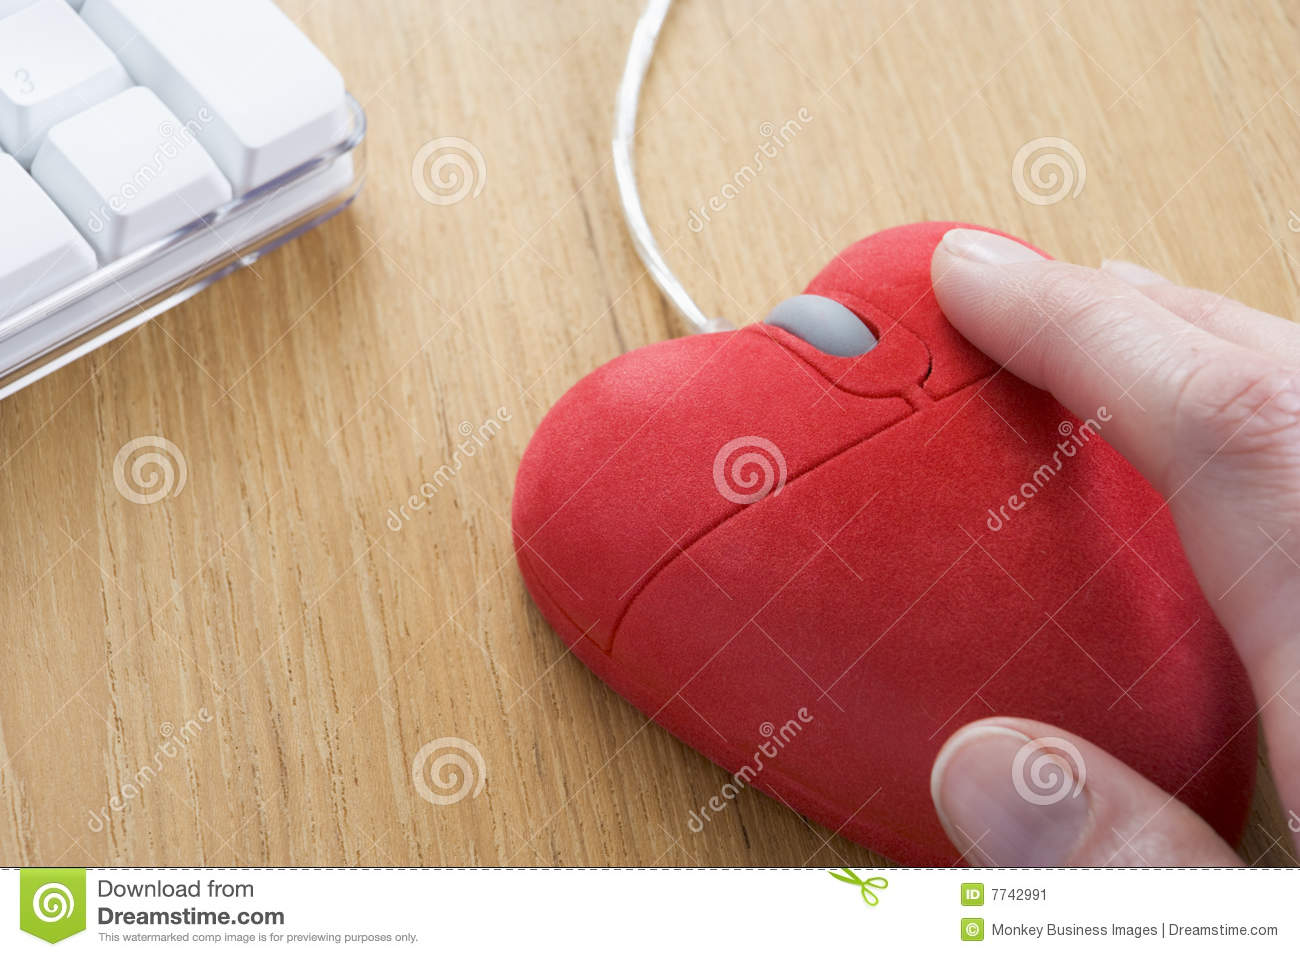 87dc3b5494a Heart-Shaped Computer Mouse Stock Image - Image of computer ...